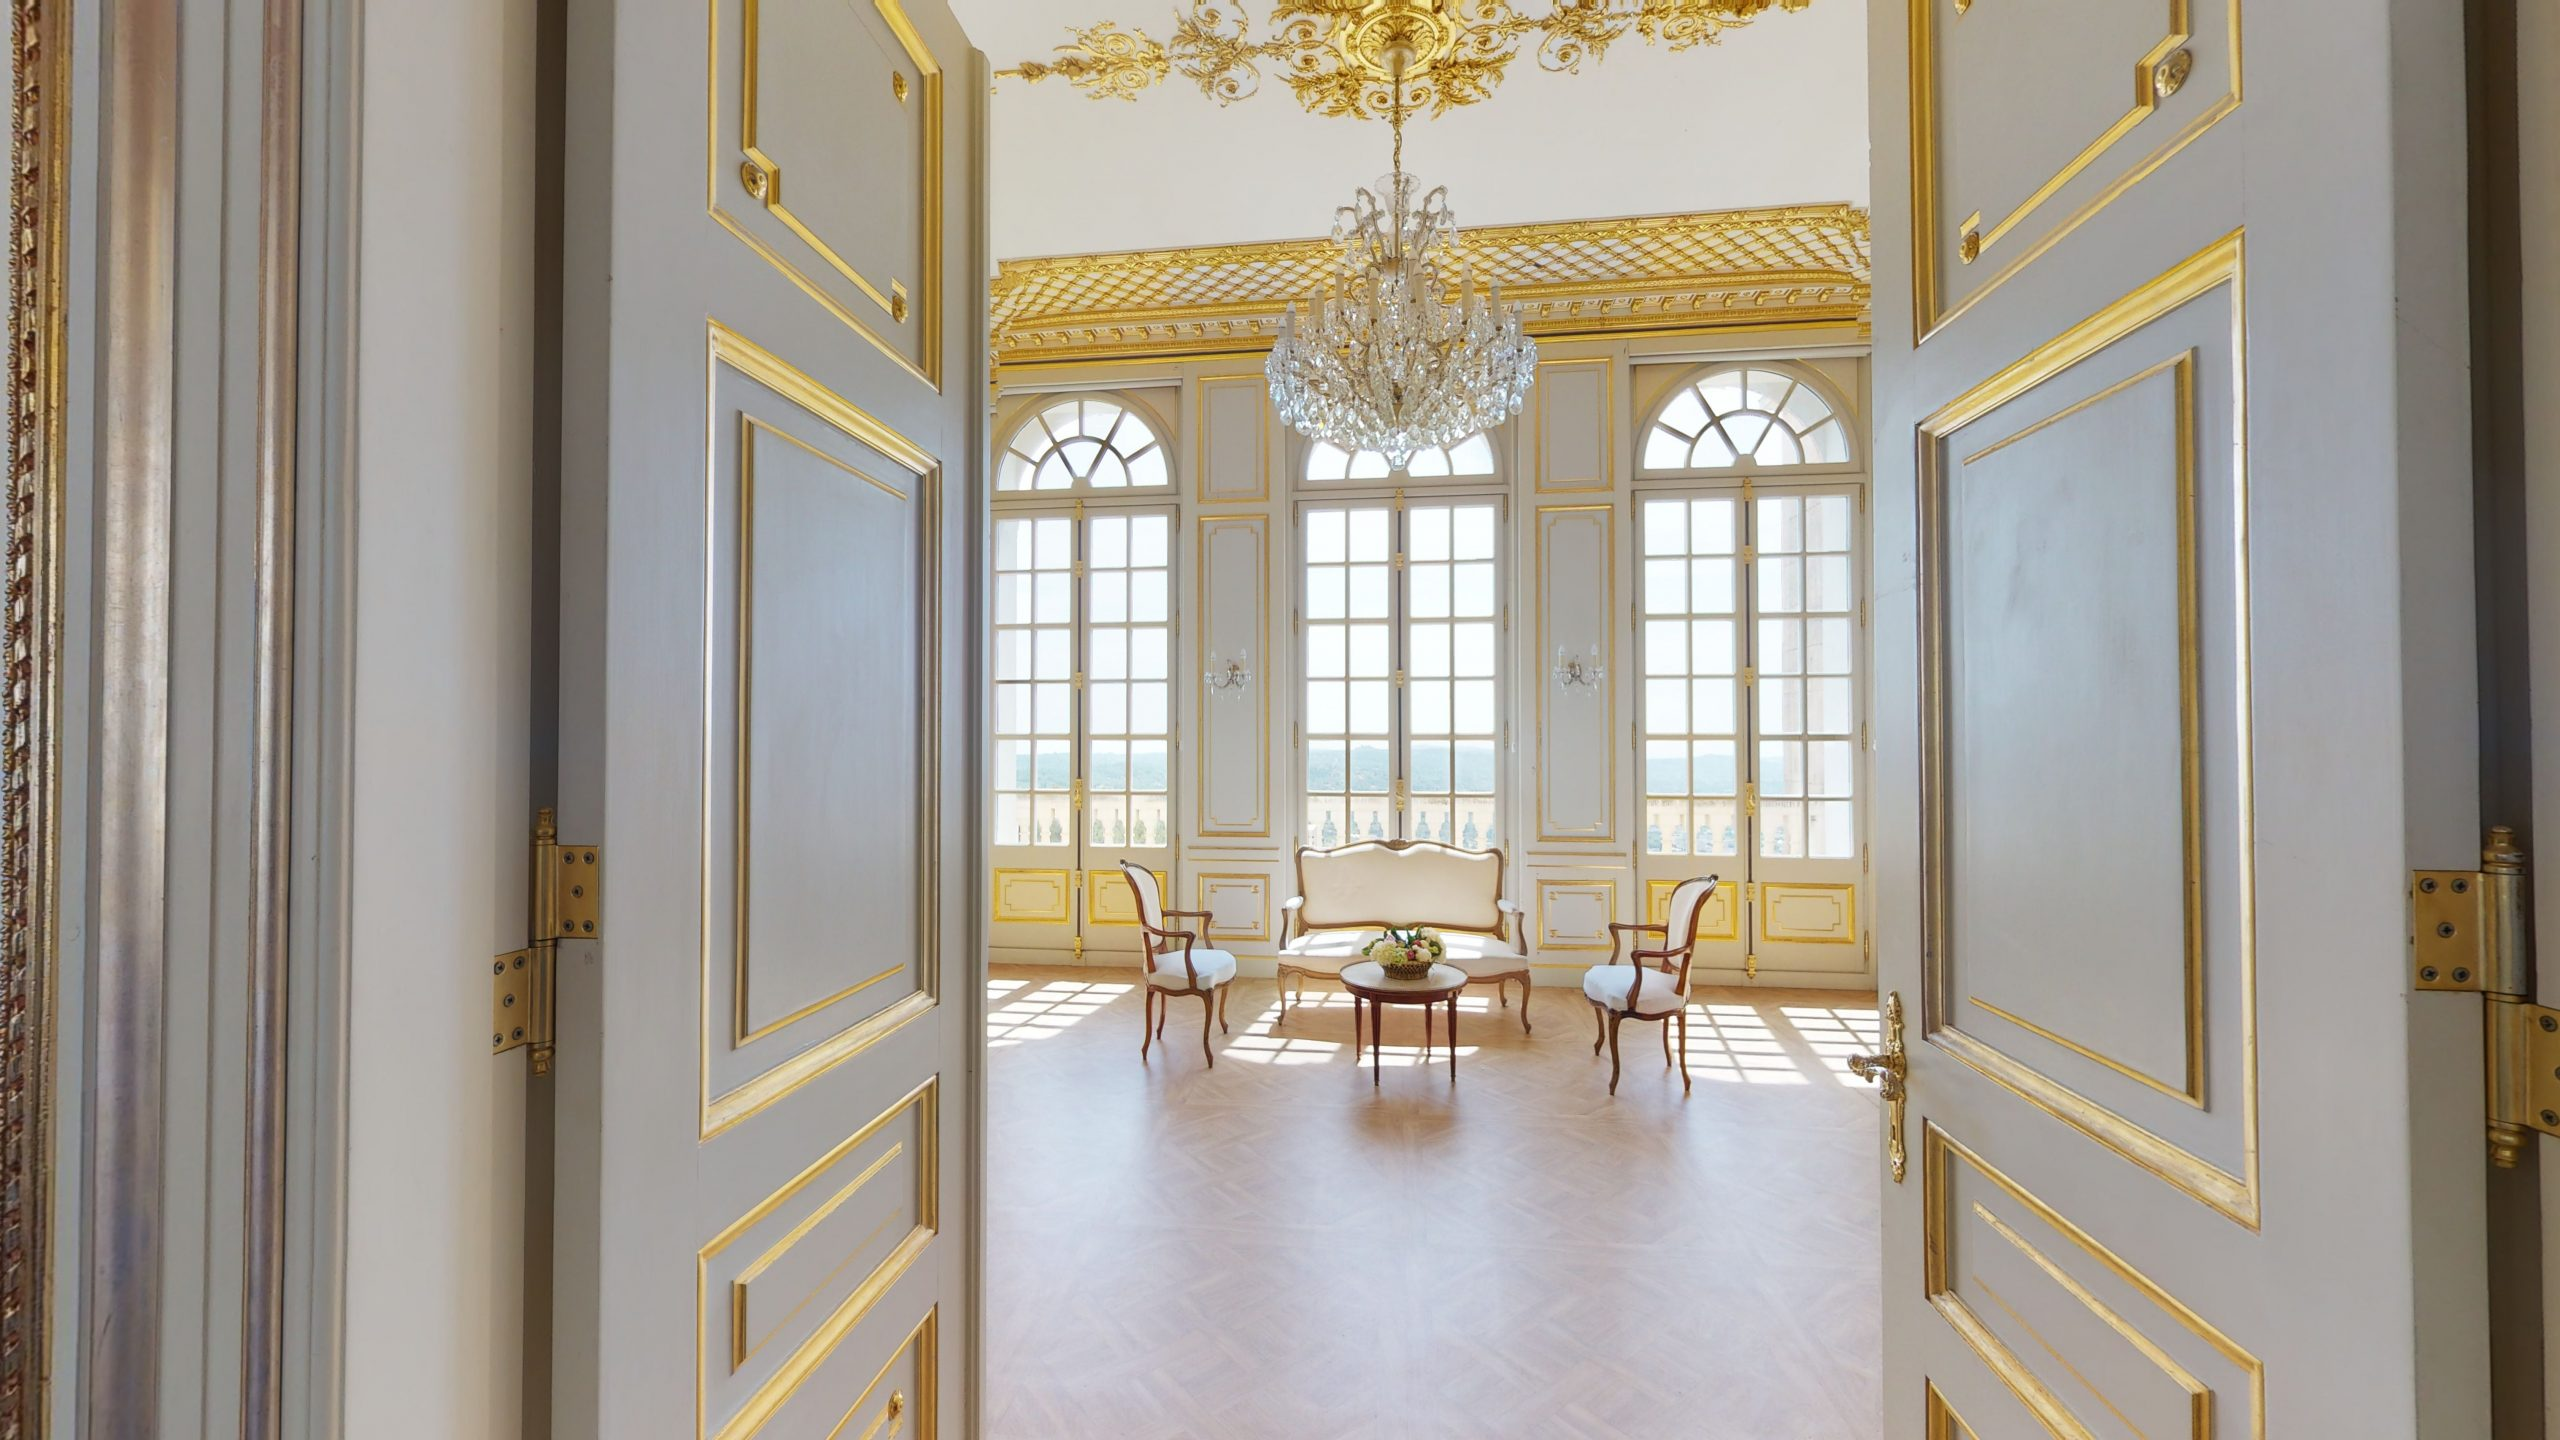 5 Reasons To Hire Chateau Saint Georges For Your Intimate Destination Wedding